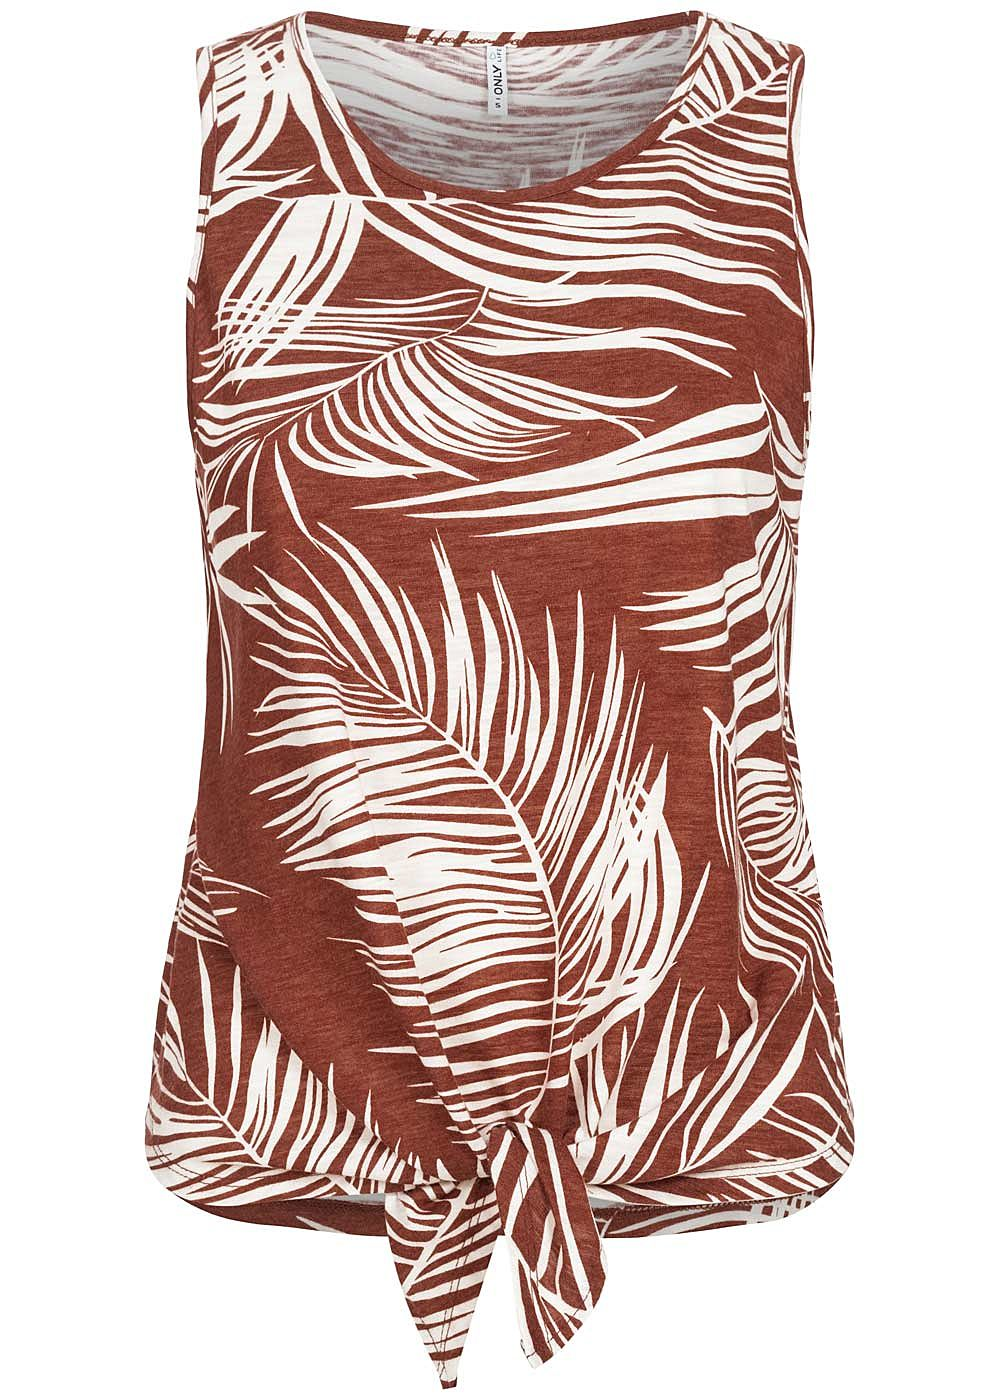 ONLY Damen Tank Top Bindedetail vorne Tropical Print burnt henna braun weiss - Art.-Nr.: 20062873